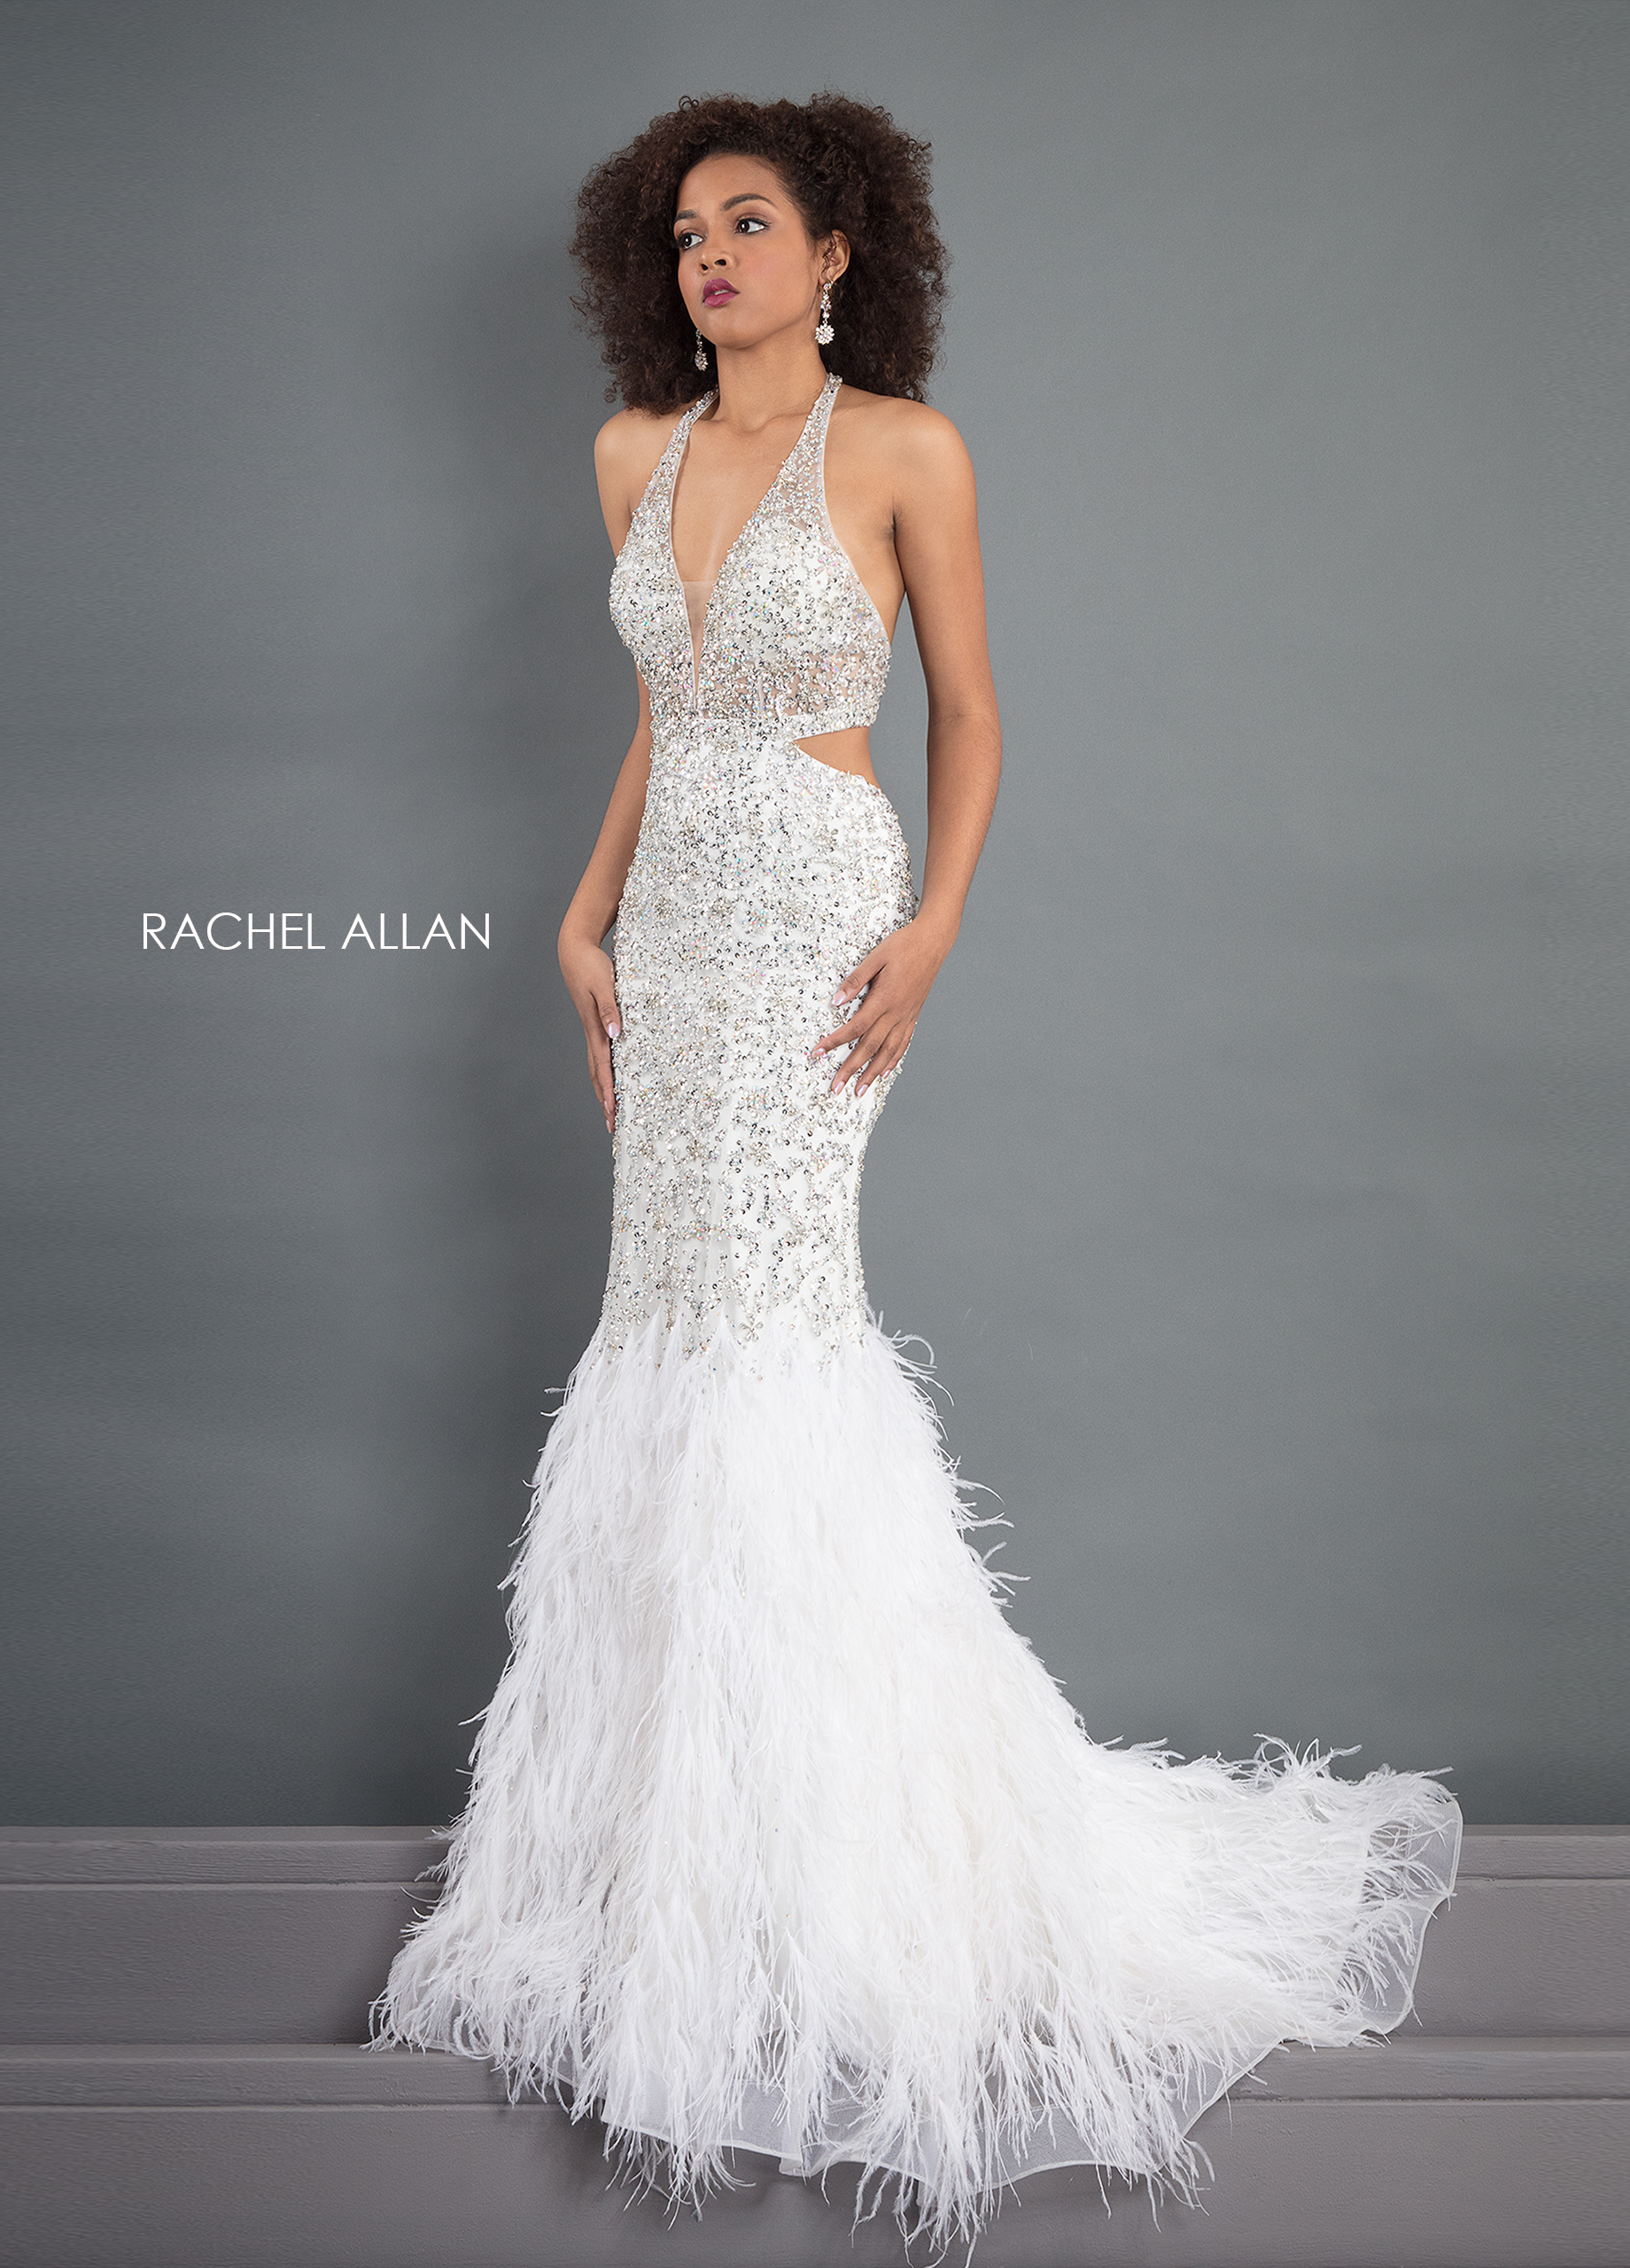 V-Neck Mermaid Pageant Dresses in White Color